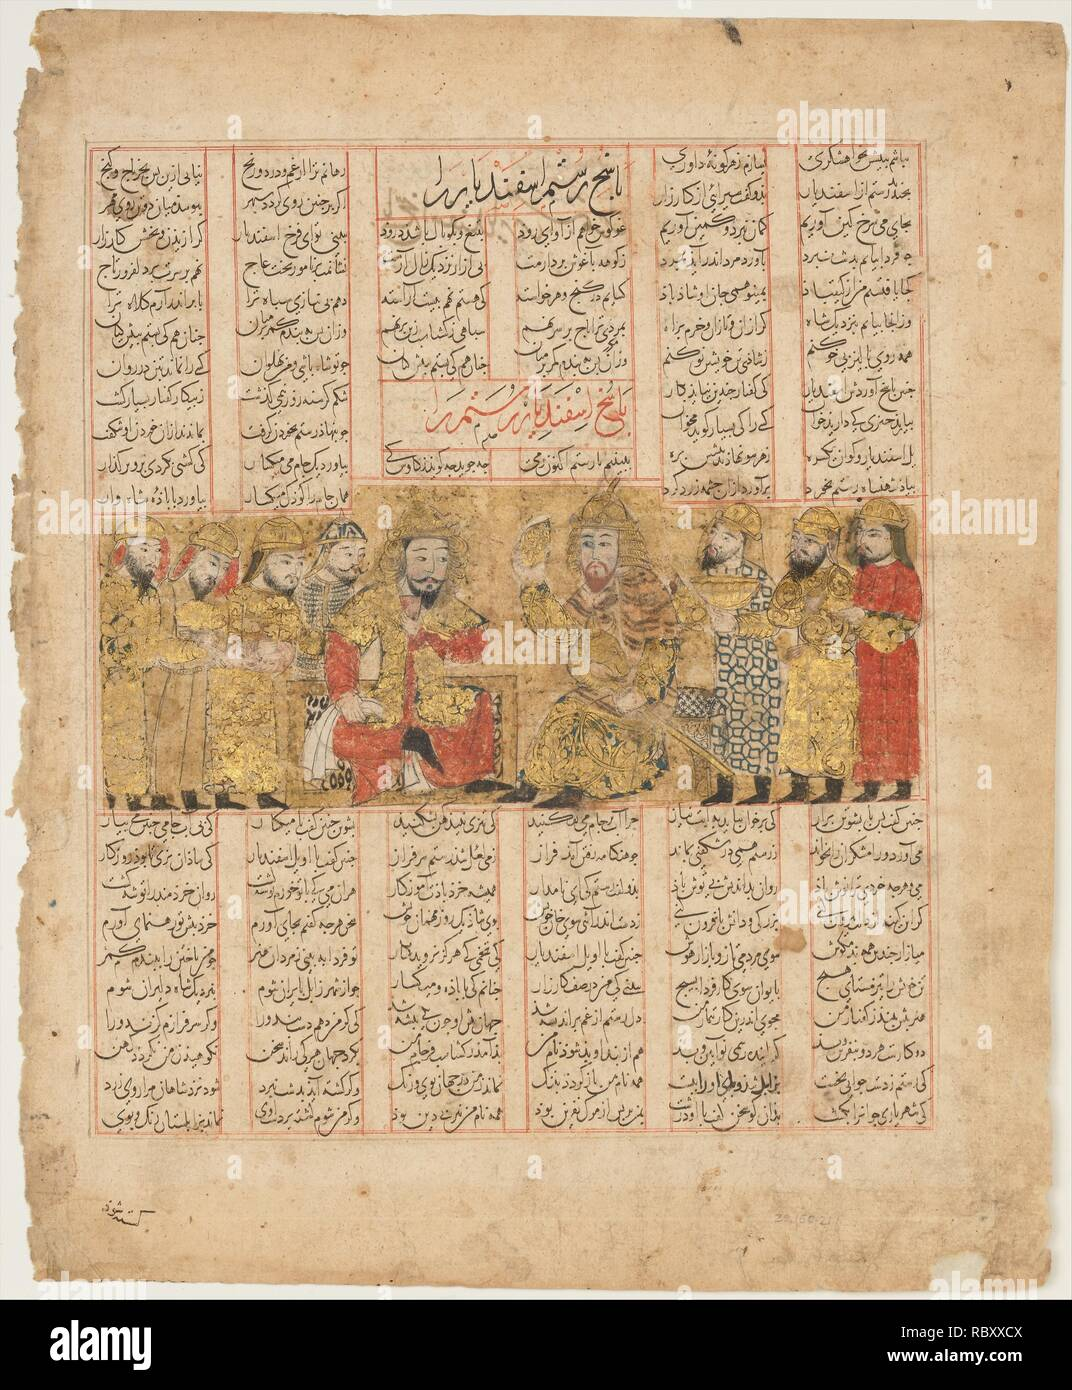 Rustam Discoursing with Isfandiyar , Folio from a Shahnama (Book of Kings) dated A.H. 741 A.D. 1341.jpg - RBXXCX - Stock Image